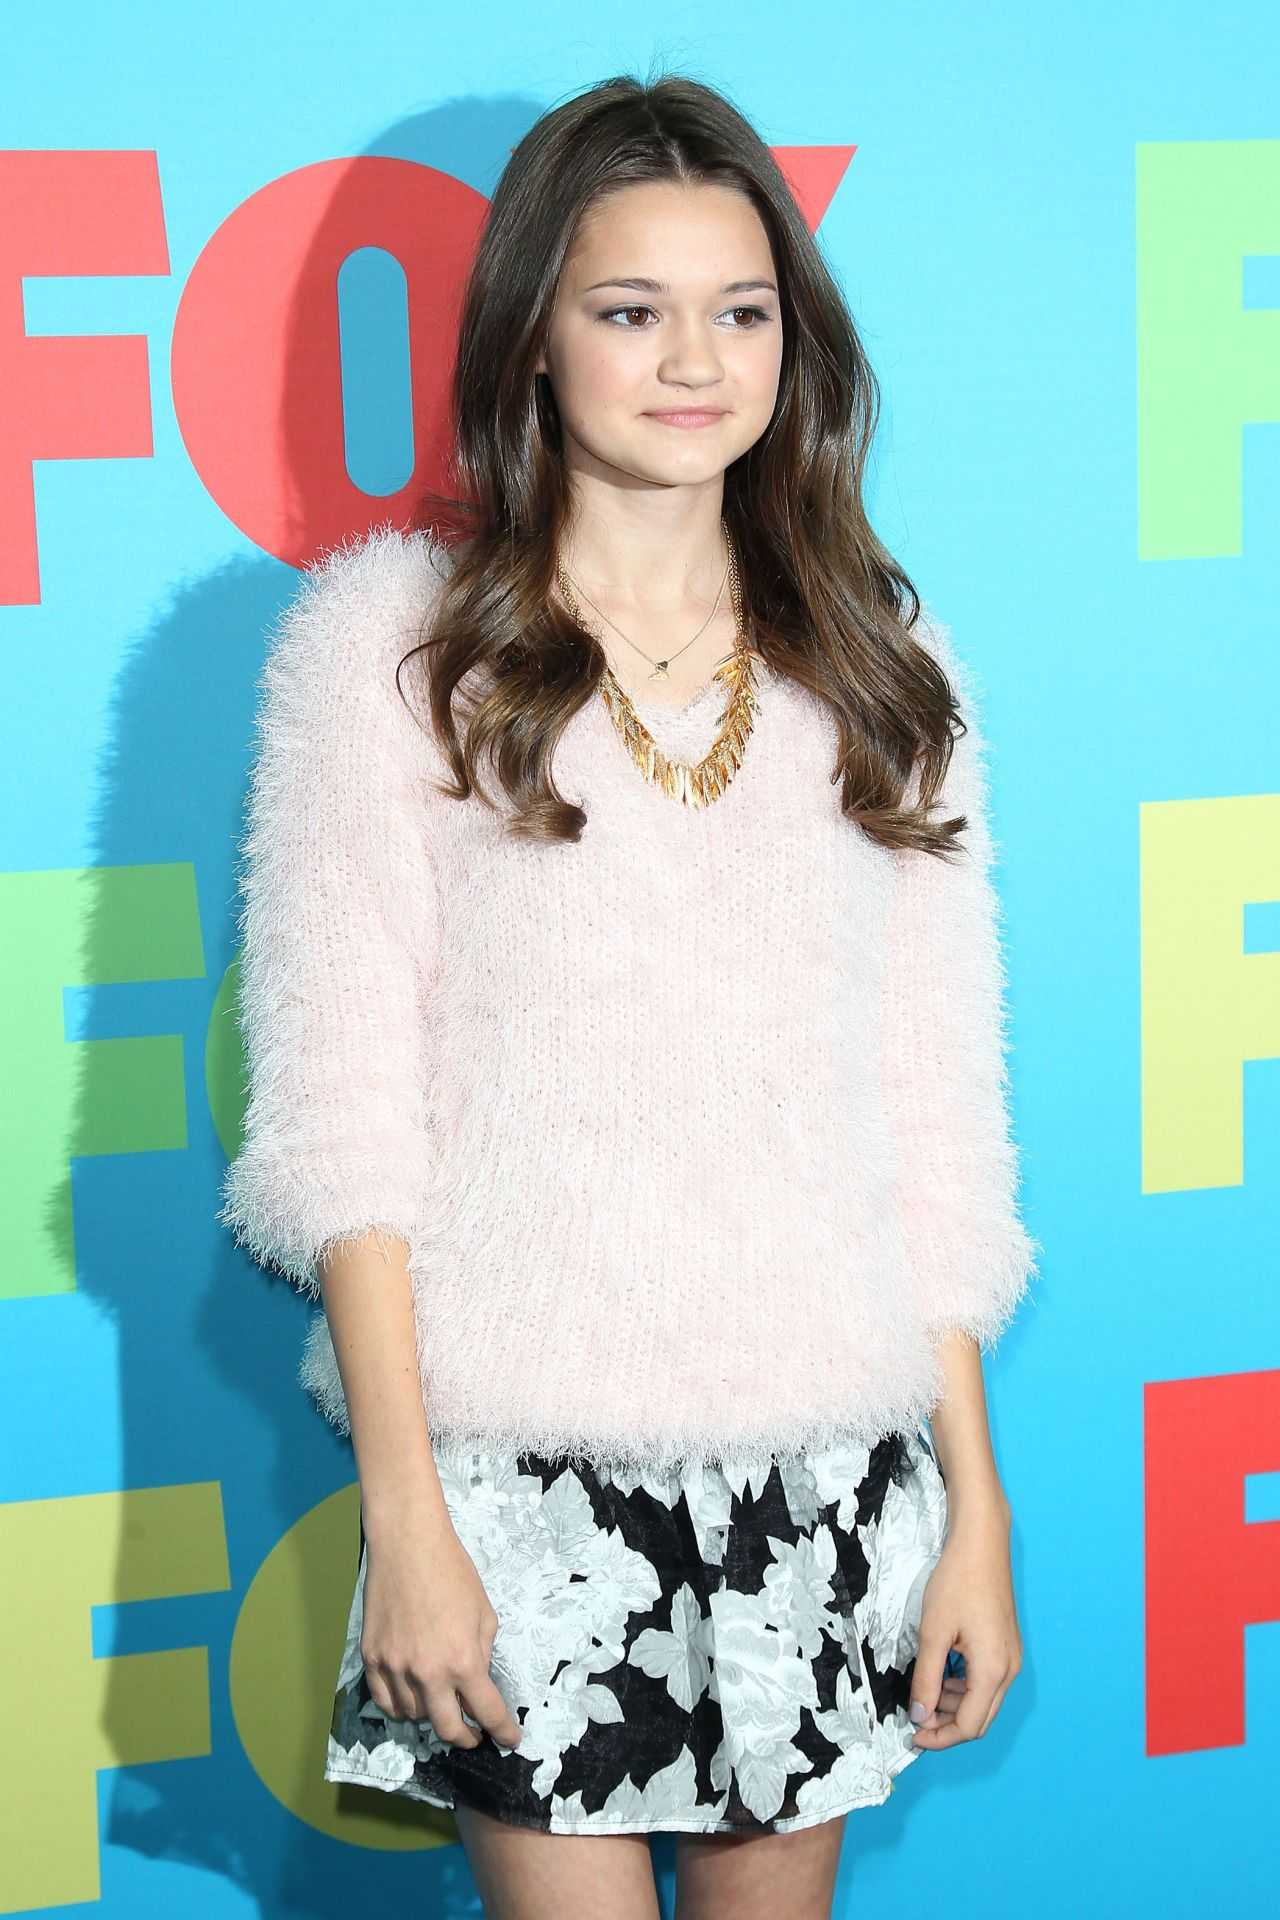 Ciara Bravo 2014 Nbc Upfront Presentation In New York City